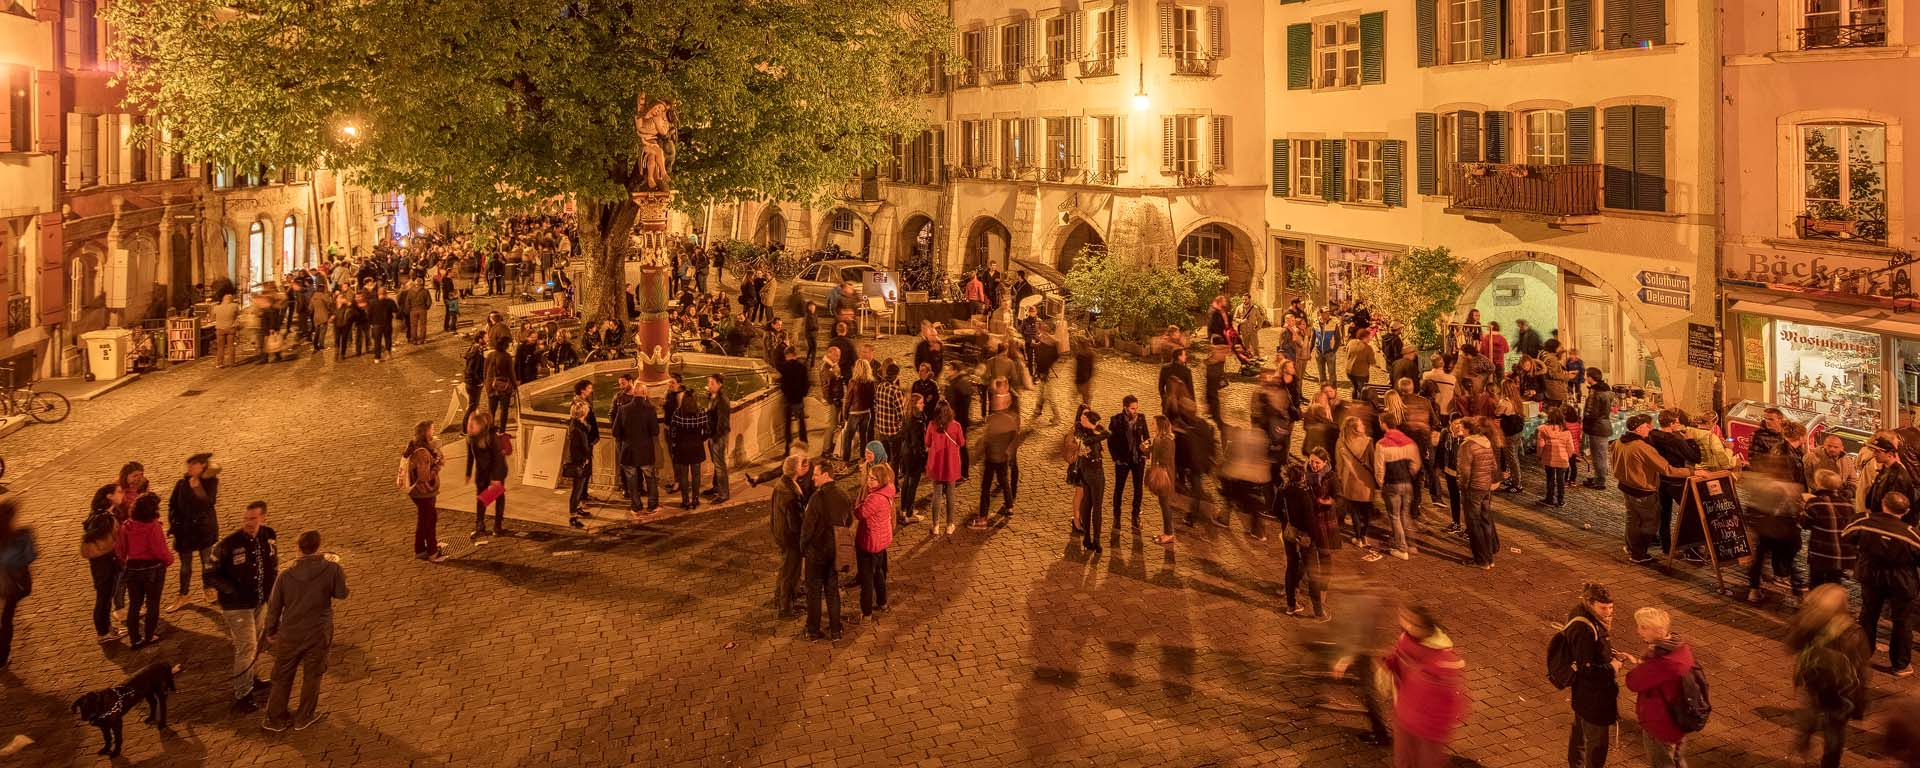 First Friday Biel-Bienne